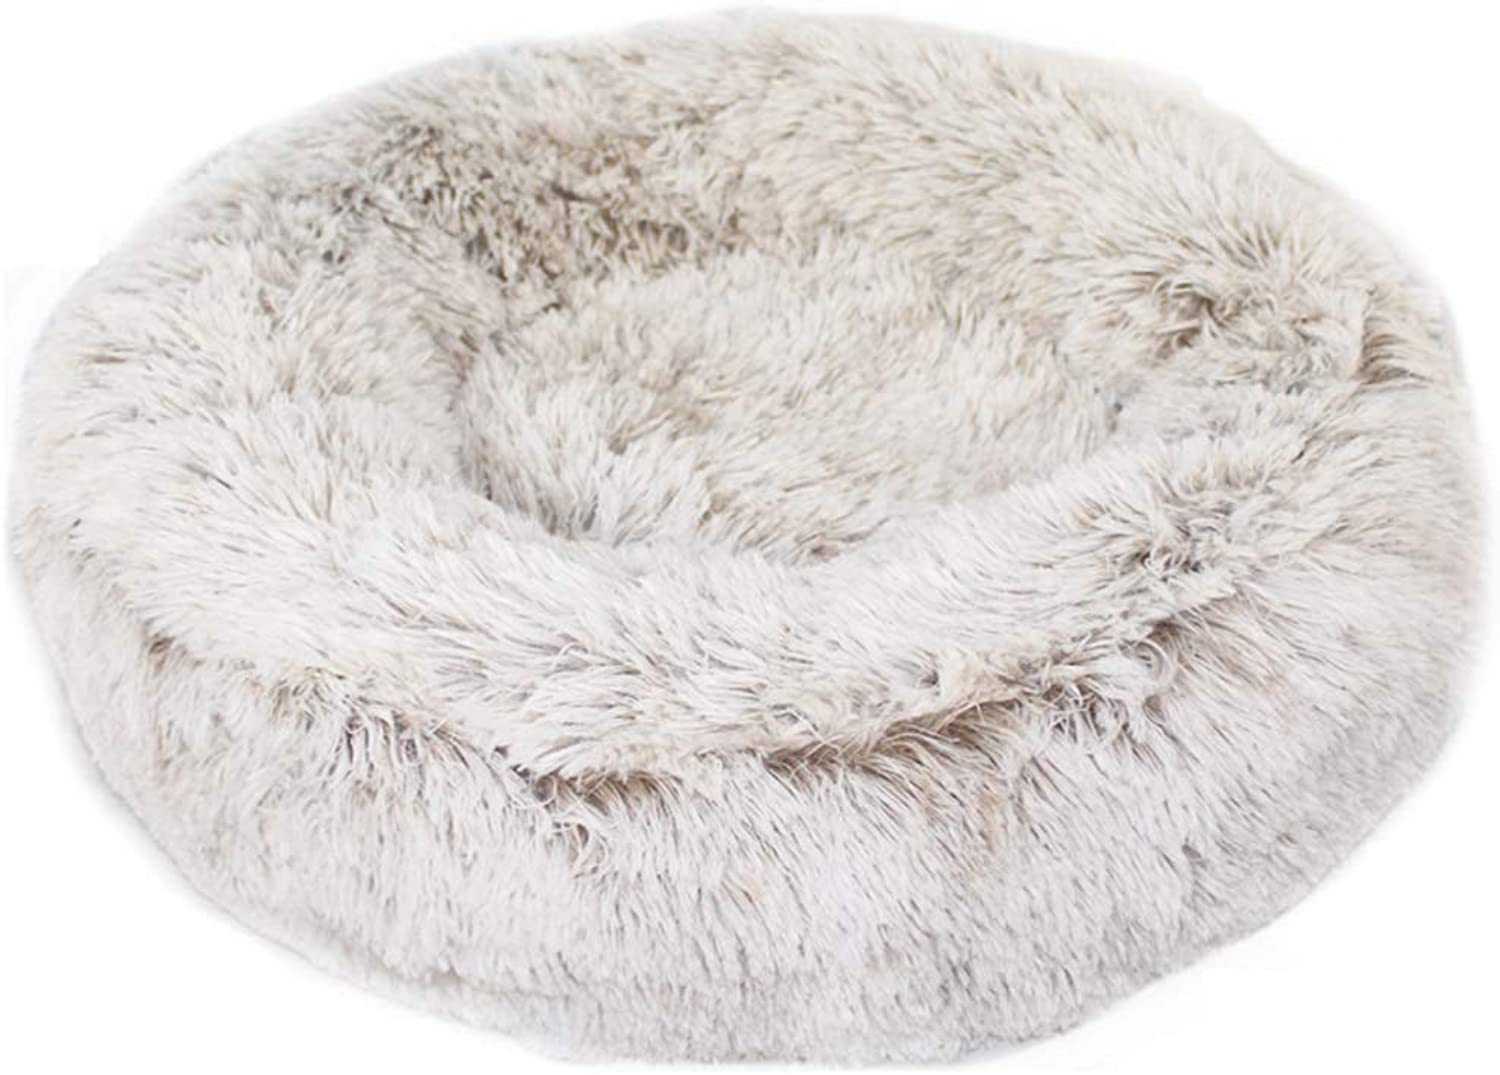 Plush Kennel Round Dog Bed Basket Cushion Washable Soft Warm Autumn and Winter Small and Medium Sized Dogs